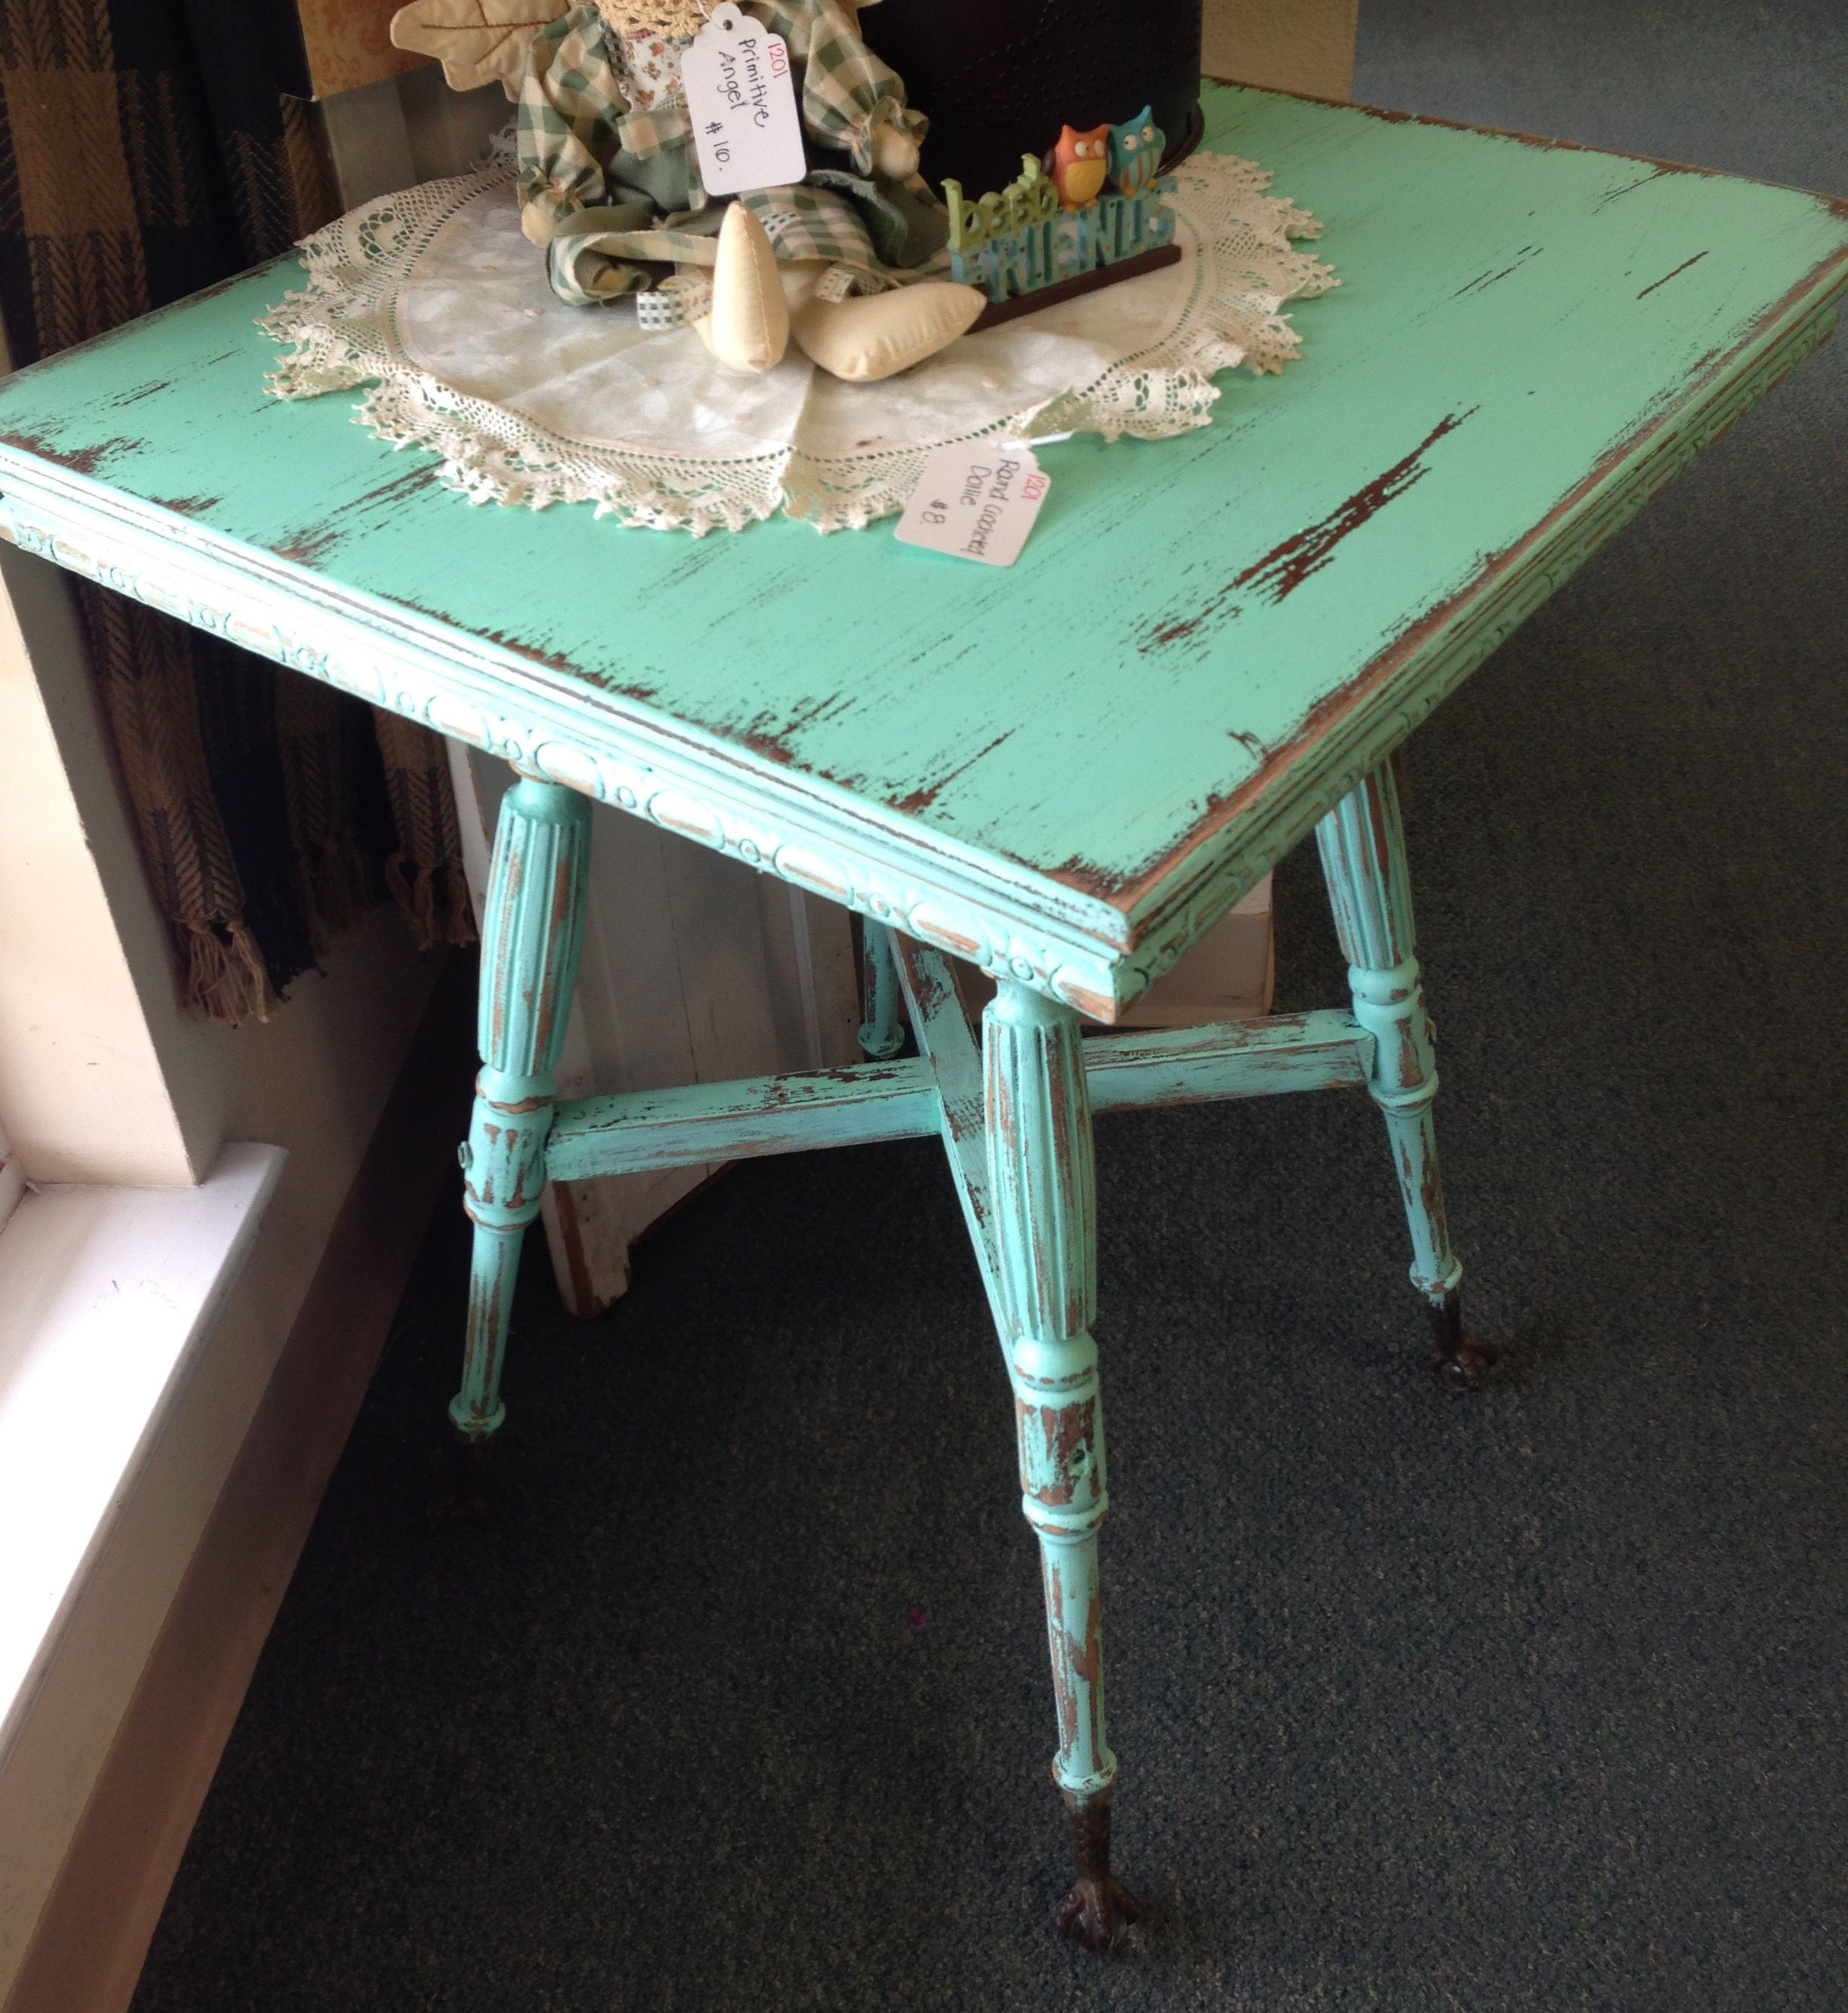 Hand-painted minty green ball & claw foot table at Homestead Handcrafts, San Antonio, Texas.